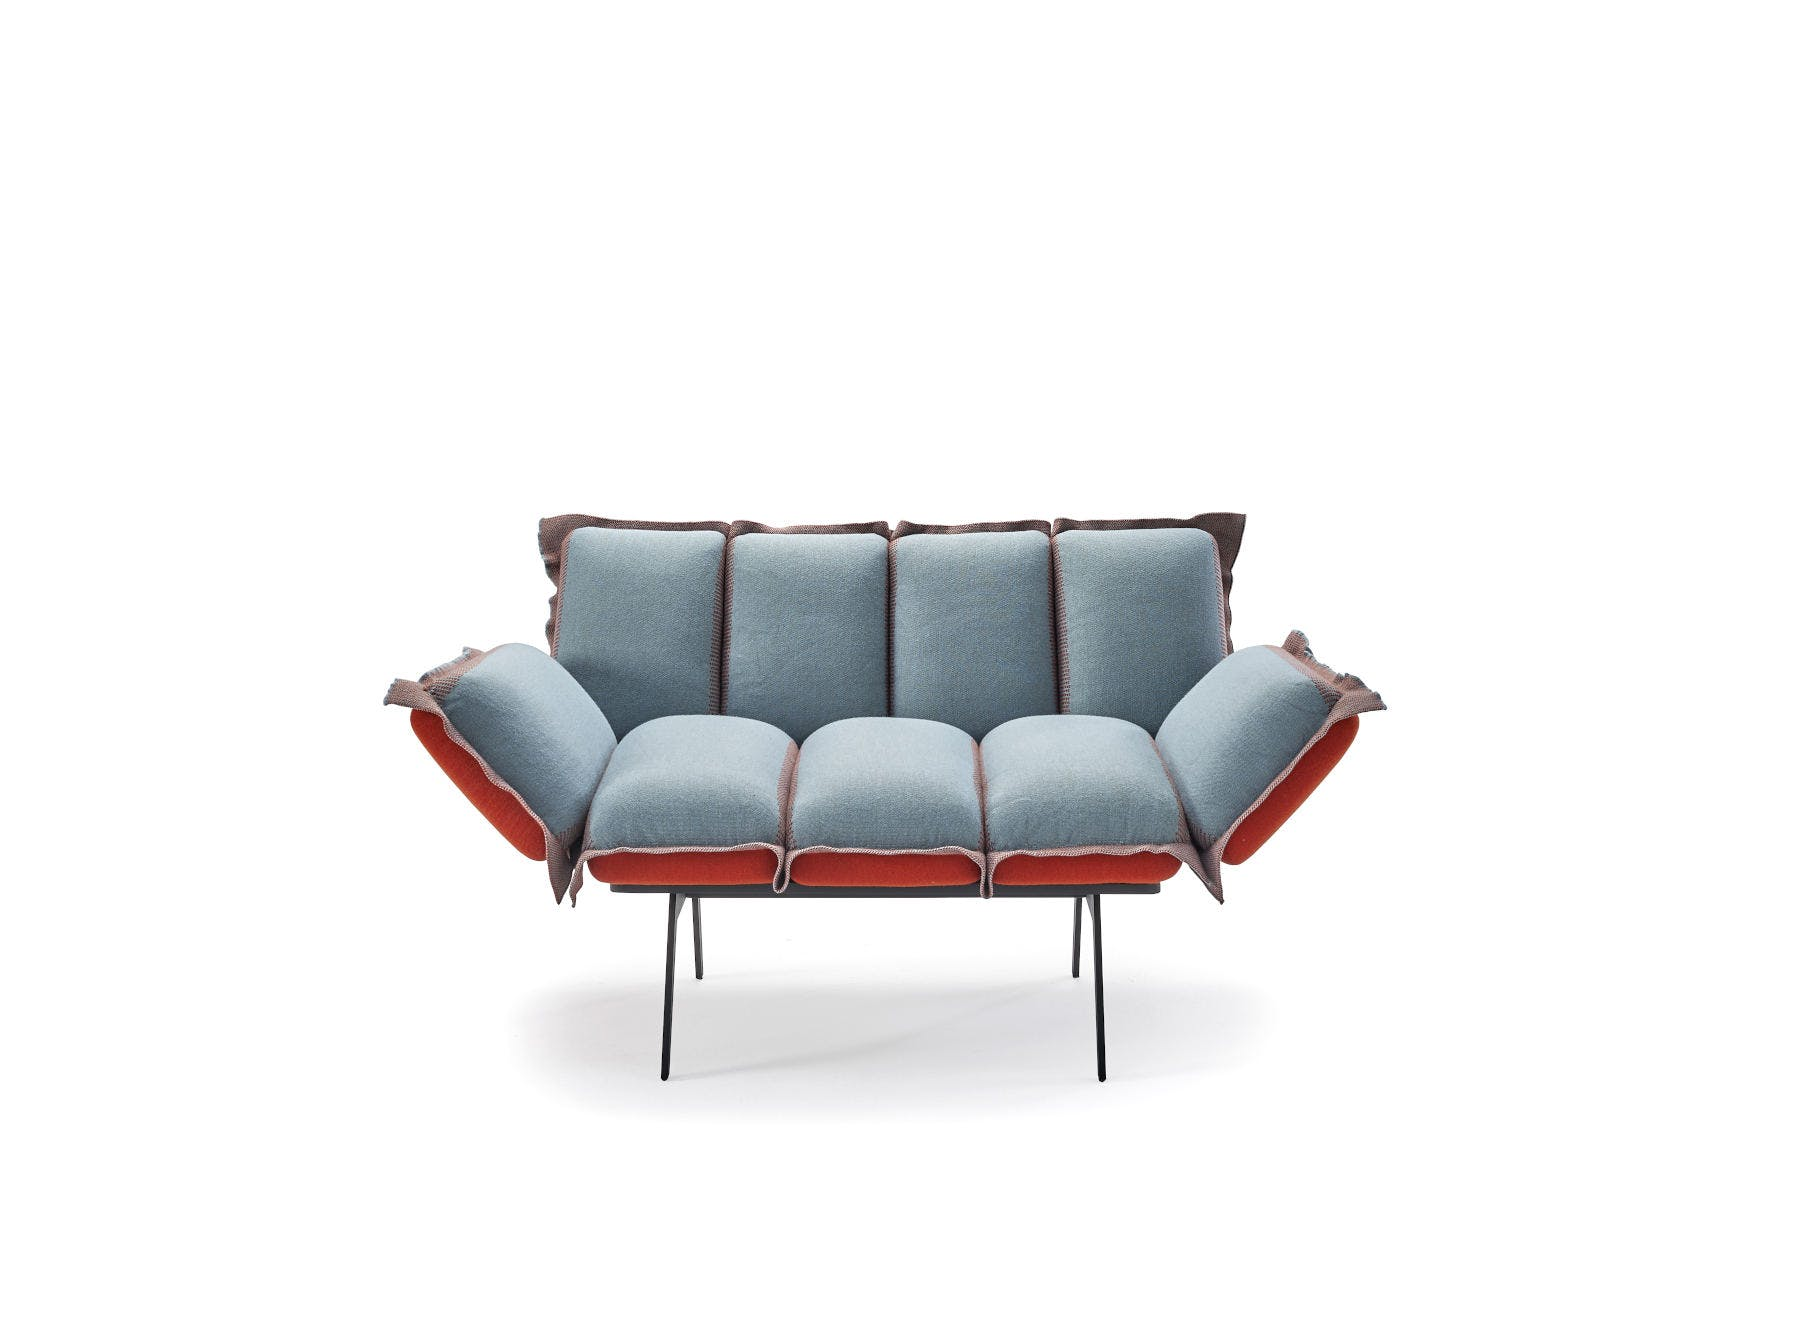 Image of Next Stop COLLETION BY SANCAL 1 in Discover the trendiest ideas to decorate your home - Cosentino